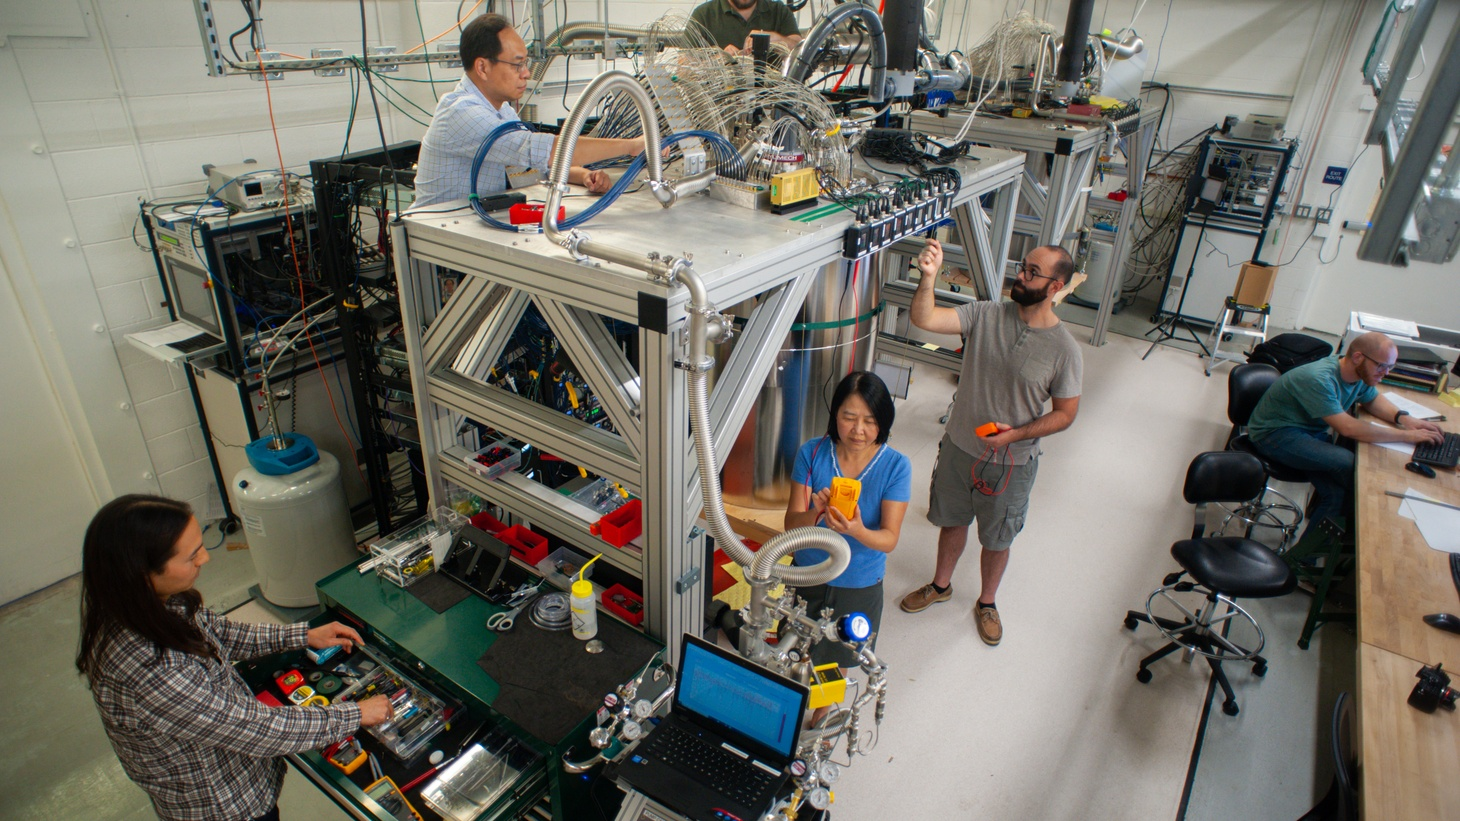 Scientists and engineers at Google maintaining the dilution refrigerator that houses the Sycamore chip used to demonstrate the quantum supremacy experiment.